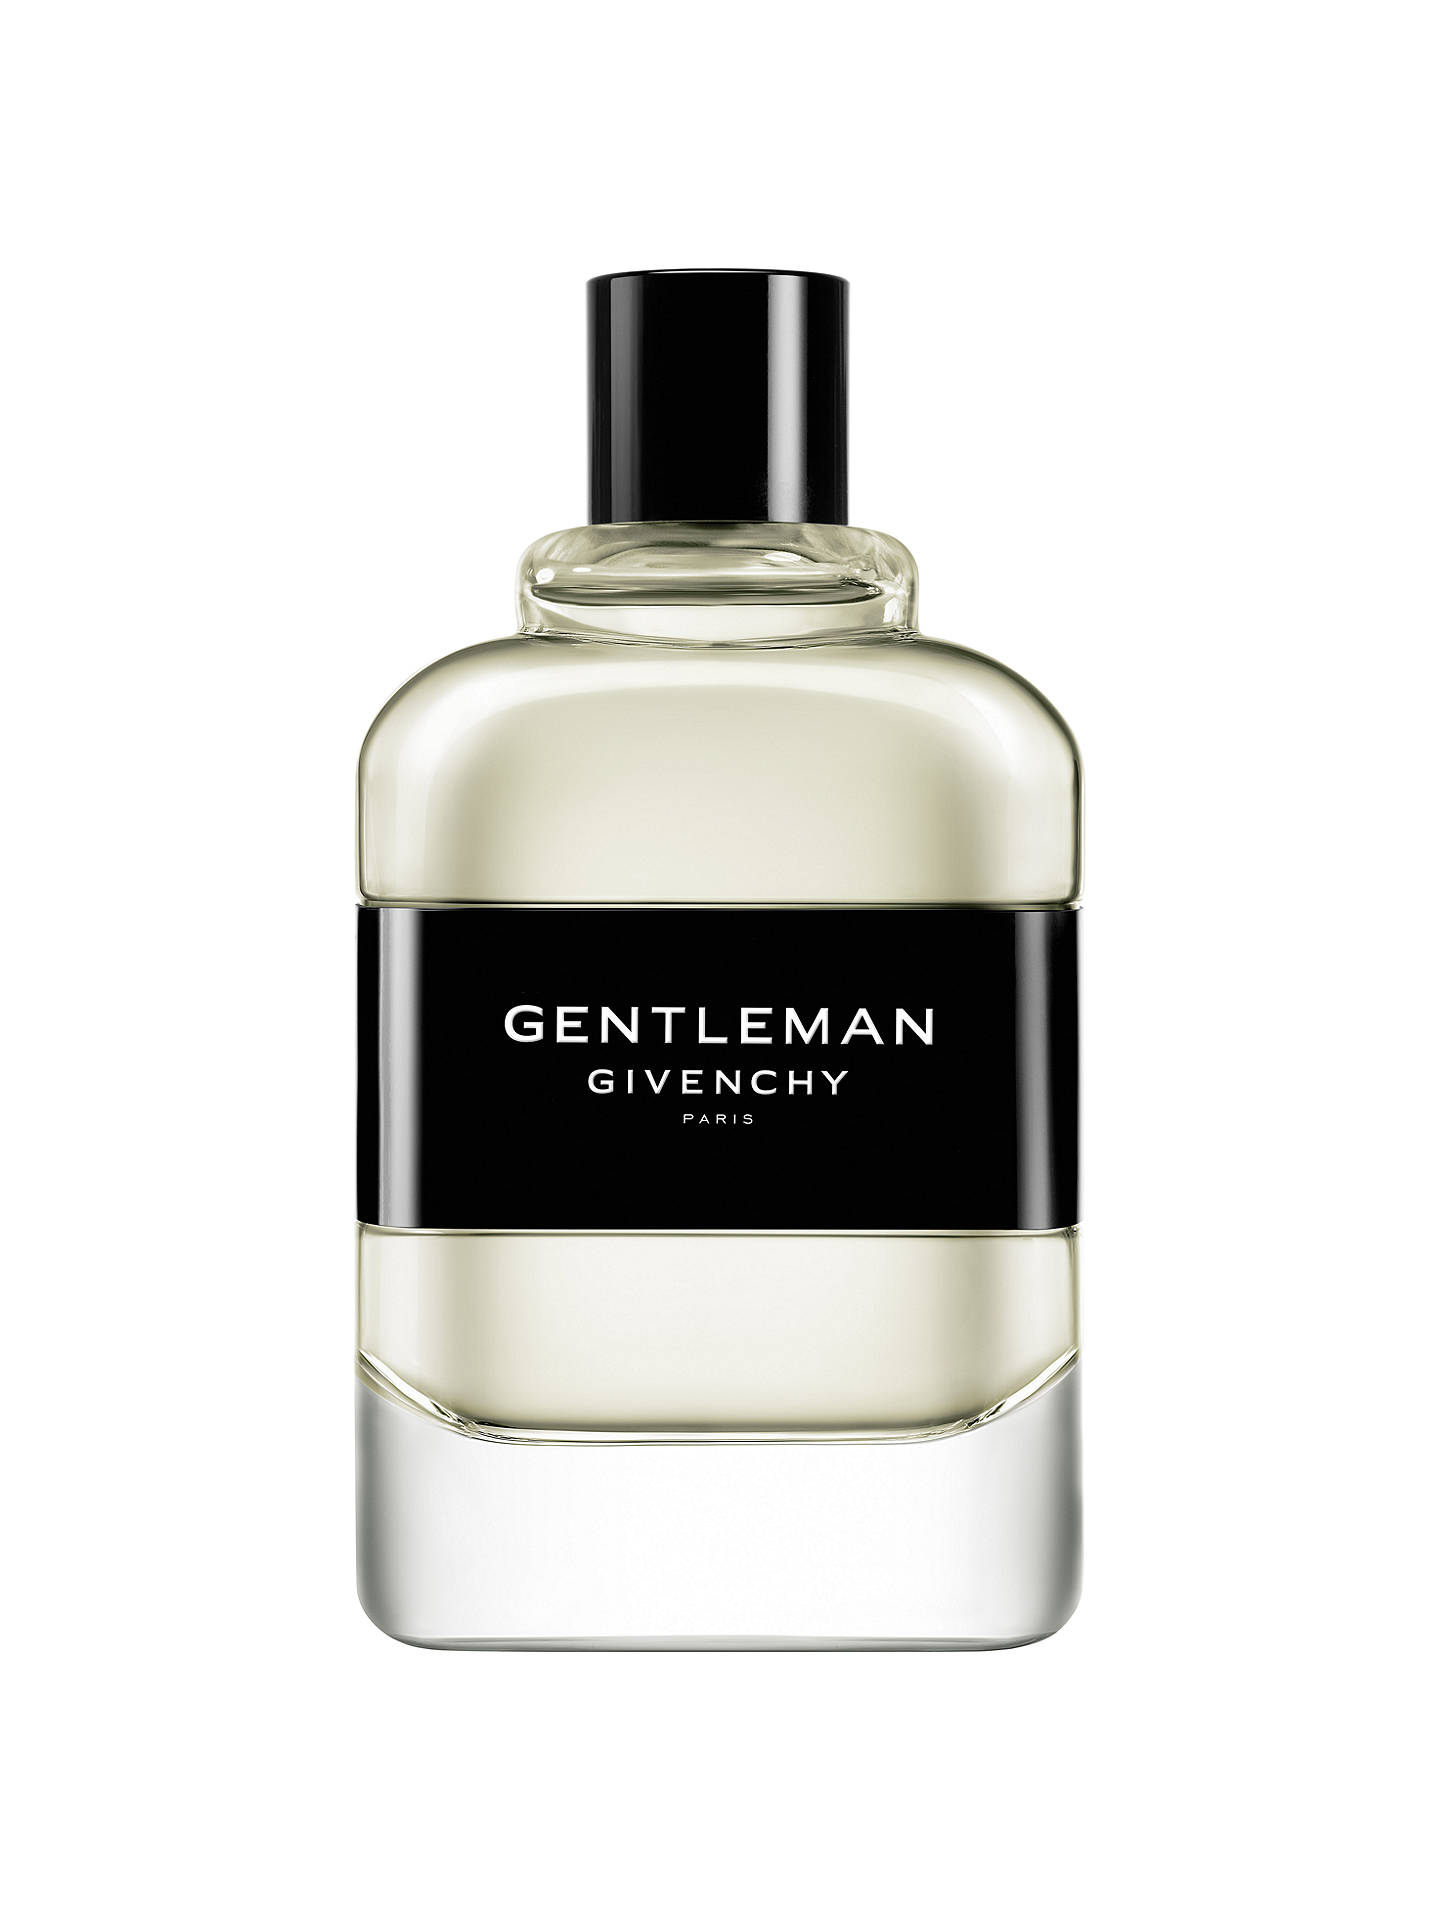 160db581d7 Buy Givenchy Gentleman Eau de Toilette, 100ml Online at johnlewis.com